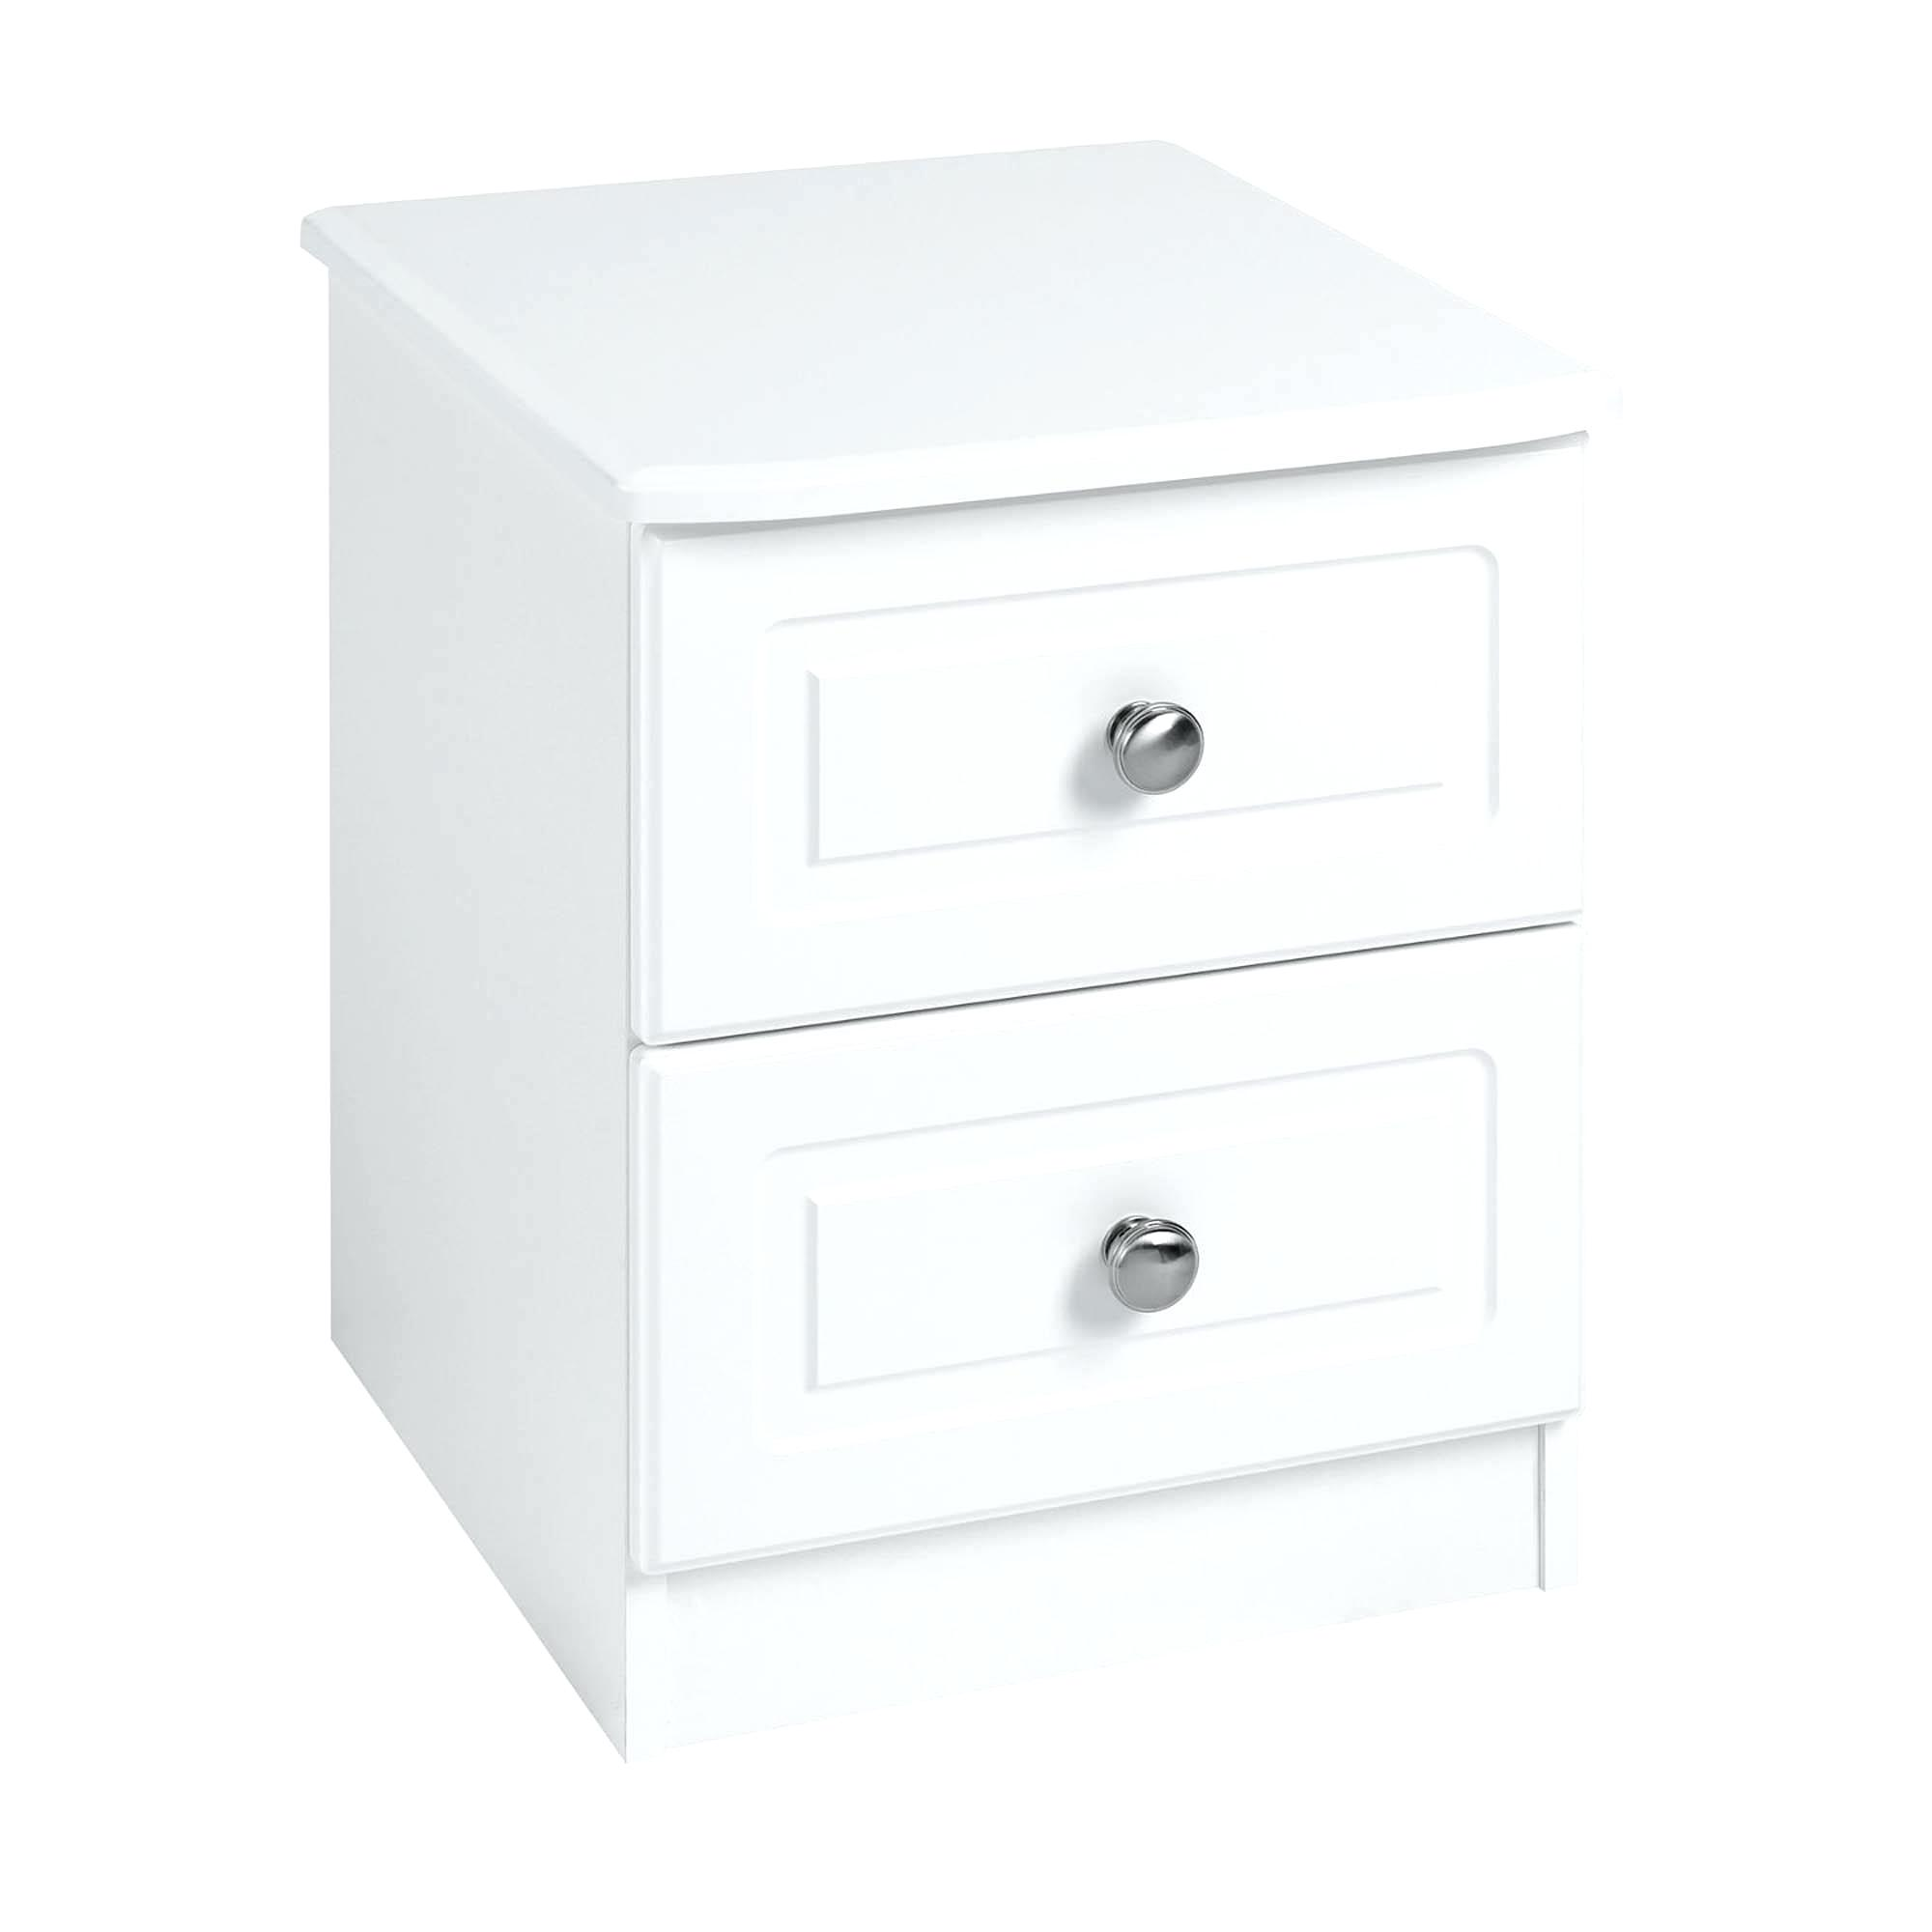 white drawer nightstand shipdirect bedside table prepac wdnh calla tall ikea accent outdoor couch set drum seat with backrest little support low living room small tiffany style